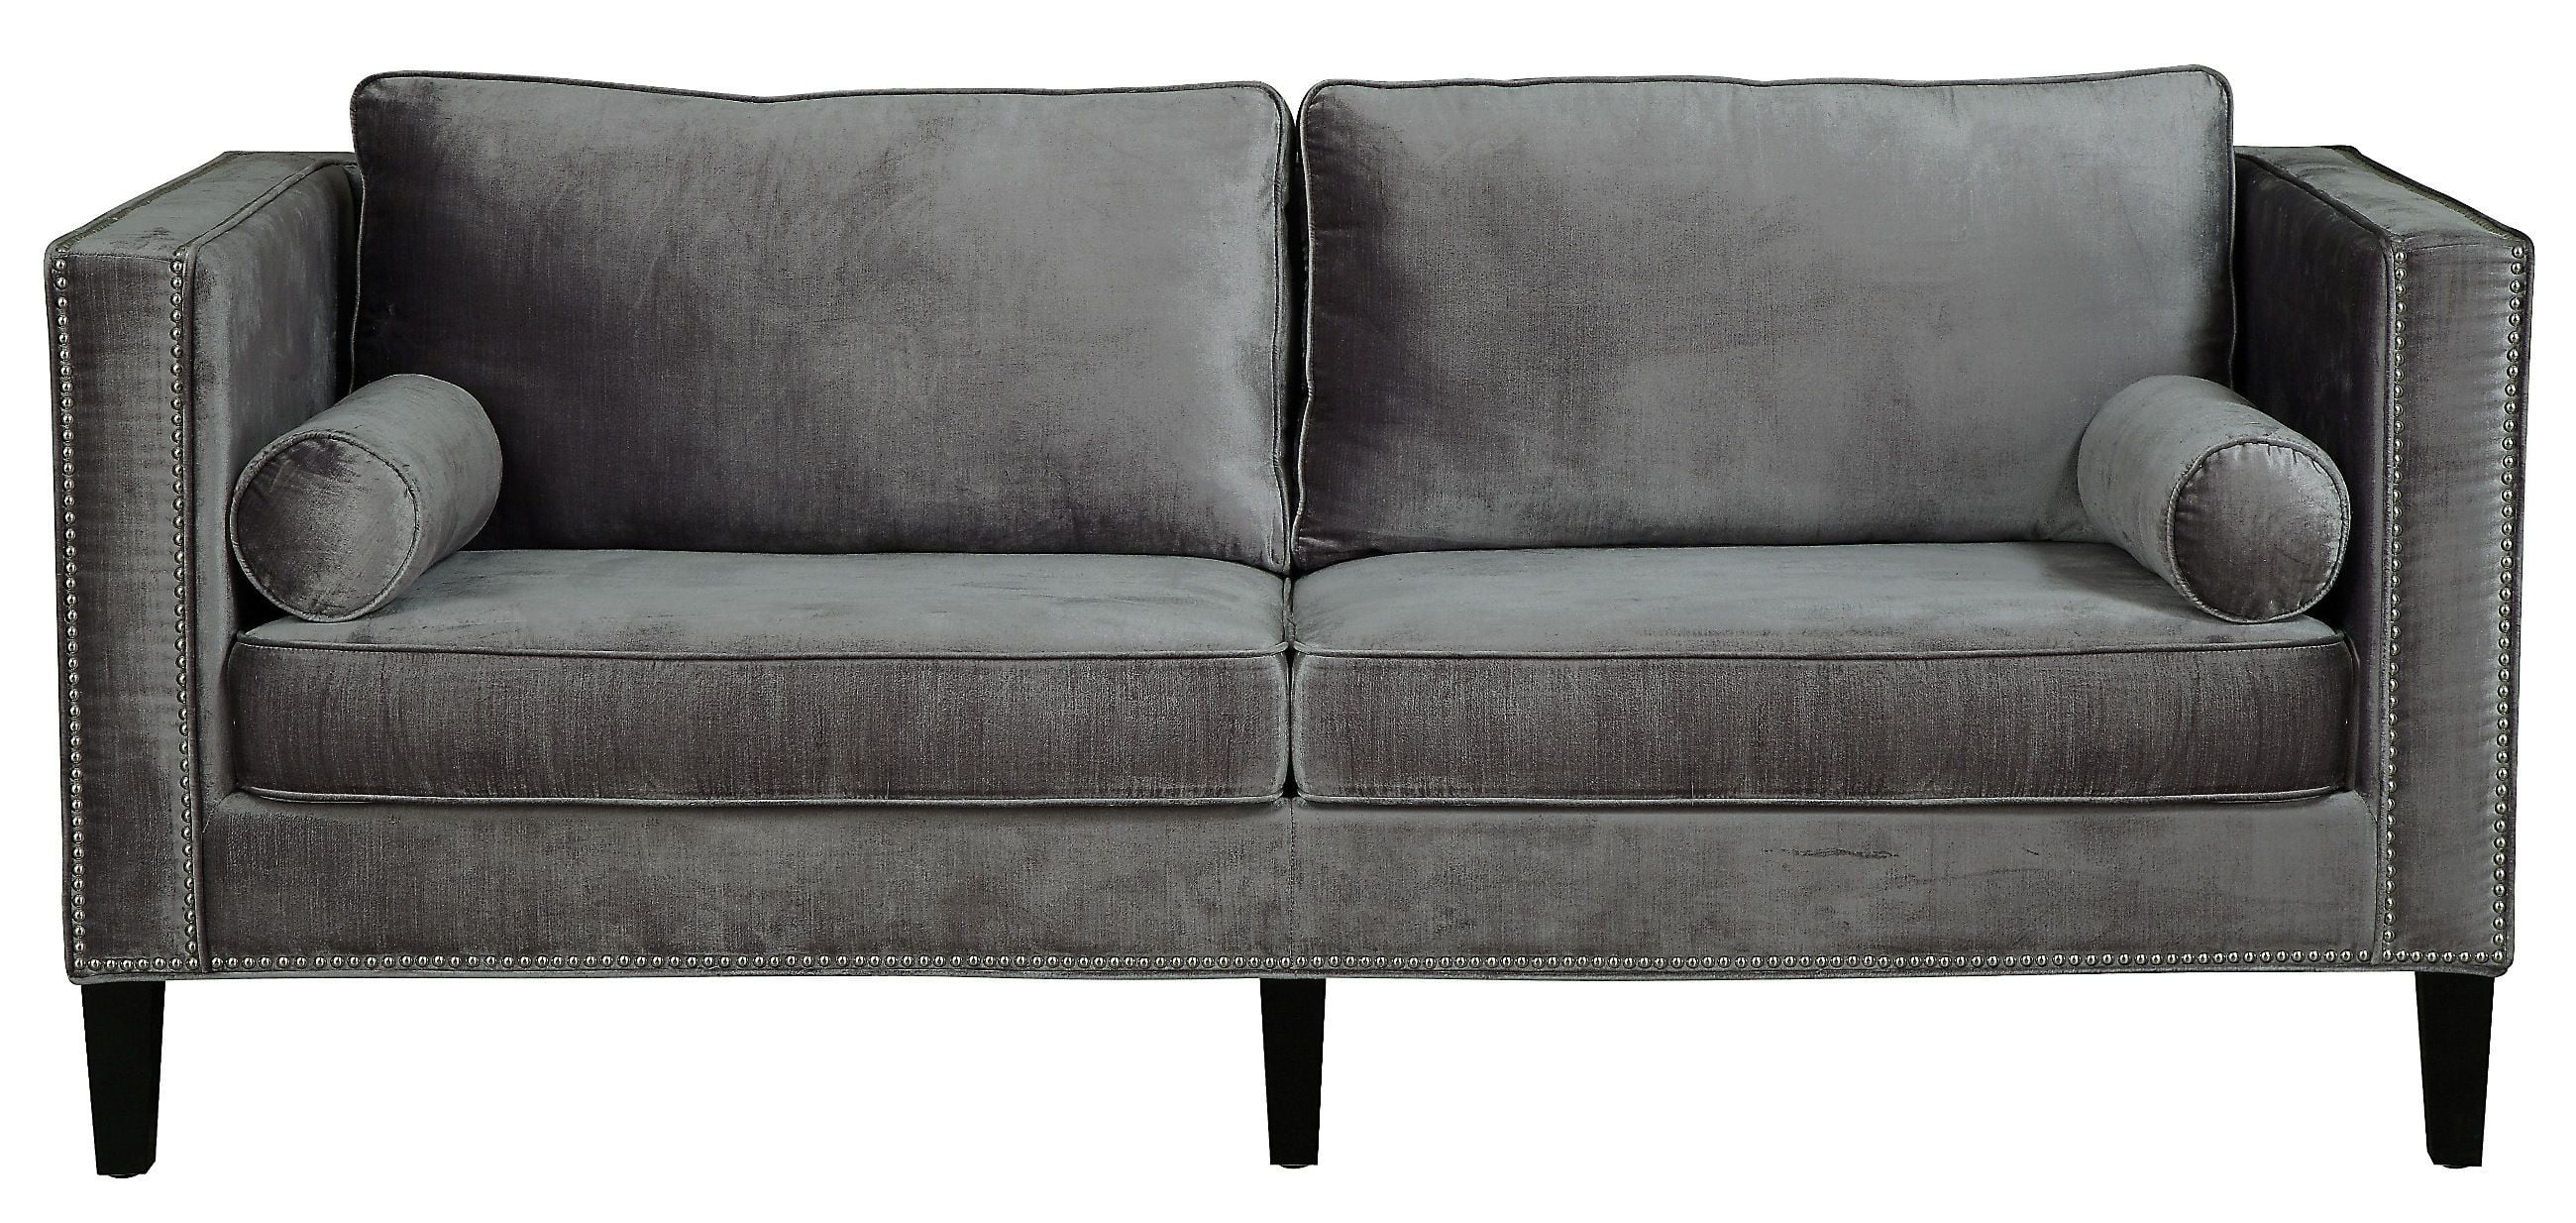 Grey Velvet Sofa Cooper Grey Velvet Sofa From Tov (s29) | Coleman Furniture